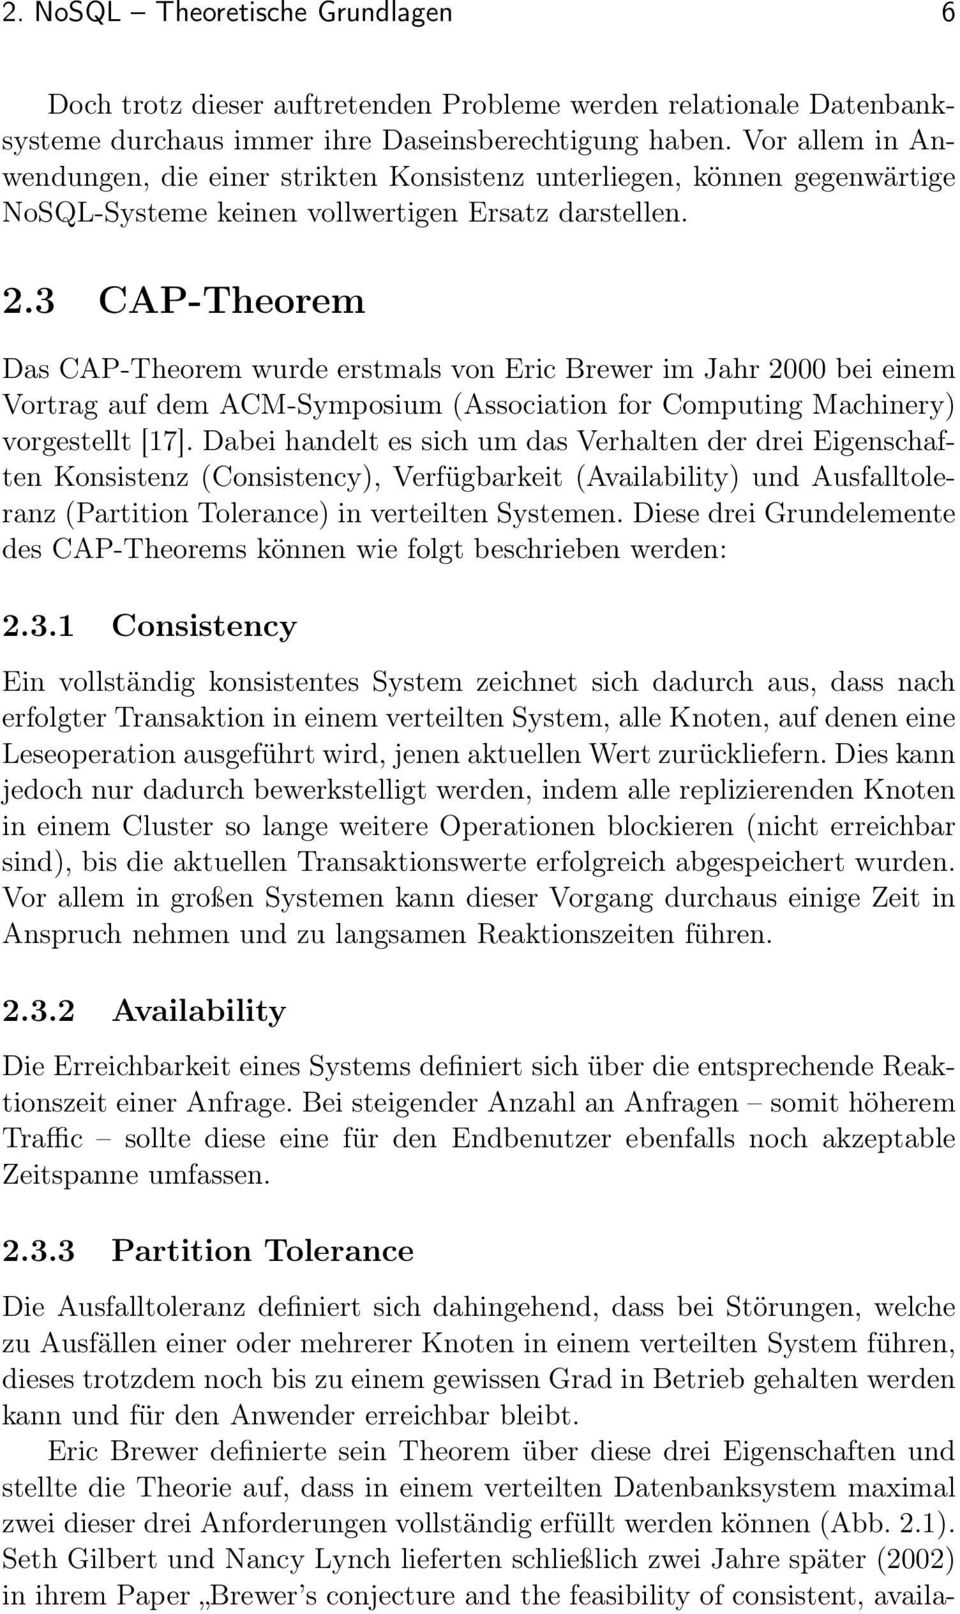 3 CAP-Theorem Das CAP-Theorem wurde erstmals von Eric Brewer im Jahr 2000 bei einem Vortrag auf dem ACM-Symposium (Association for Computing Machinery) vorgestellt [17].